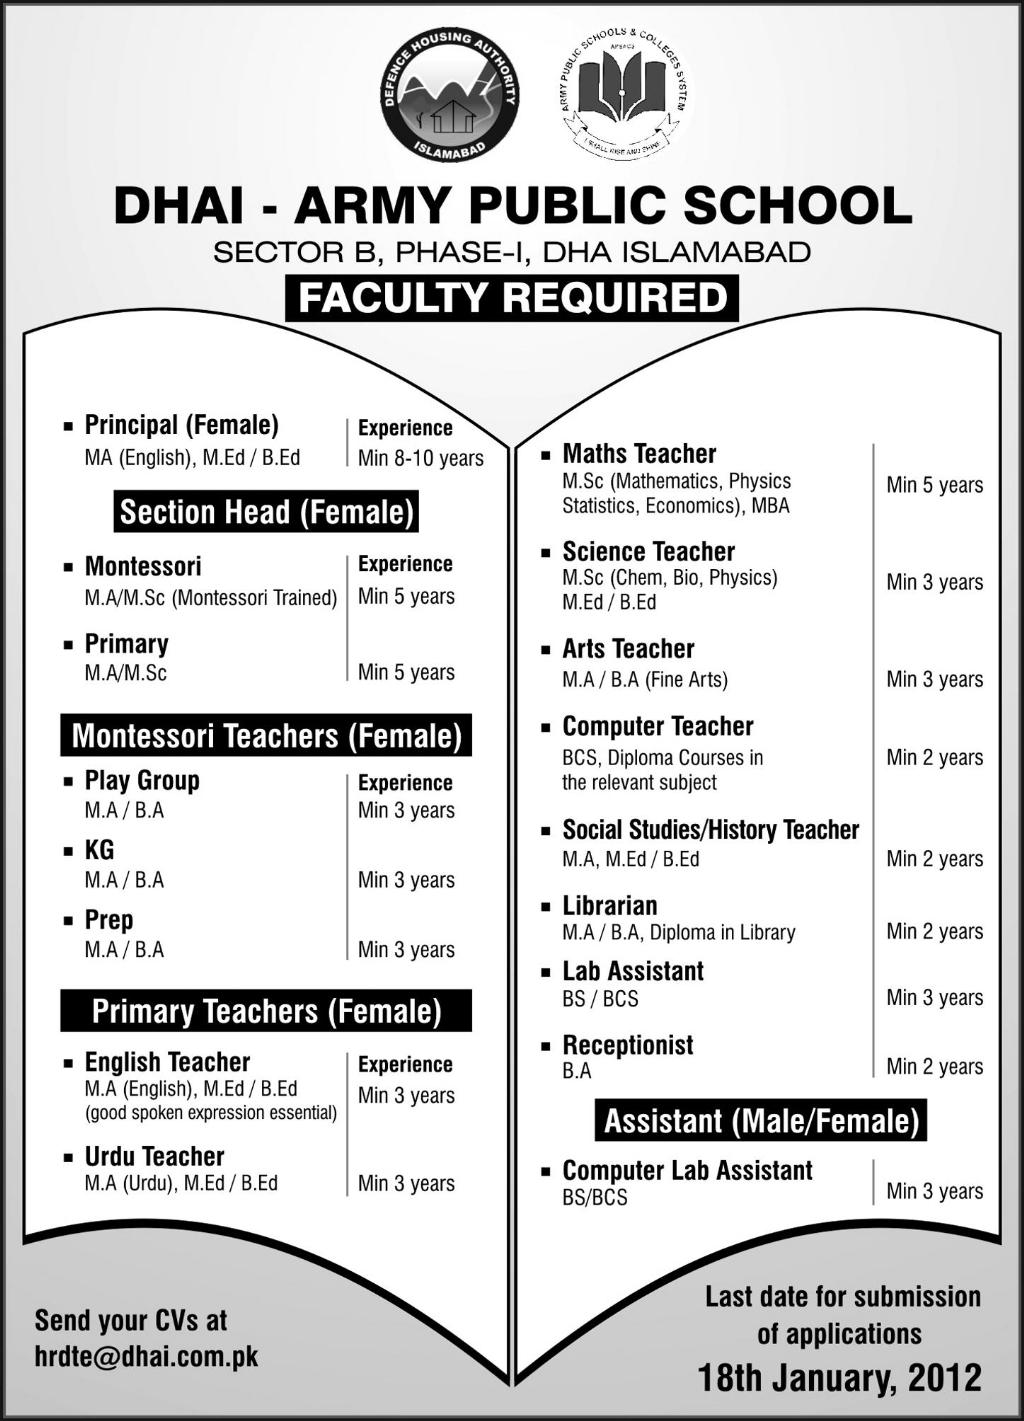 dhai army public school  islamabad required faculty in